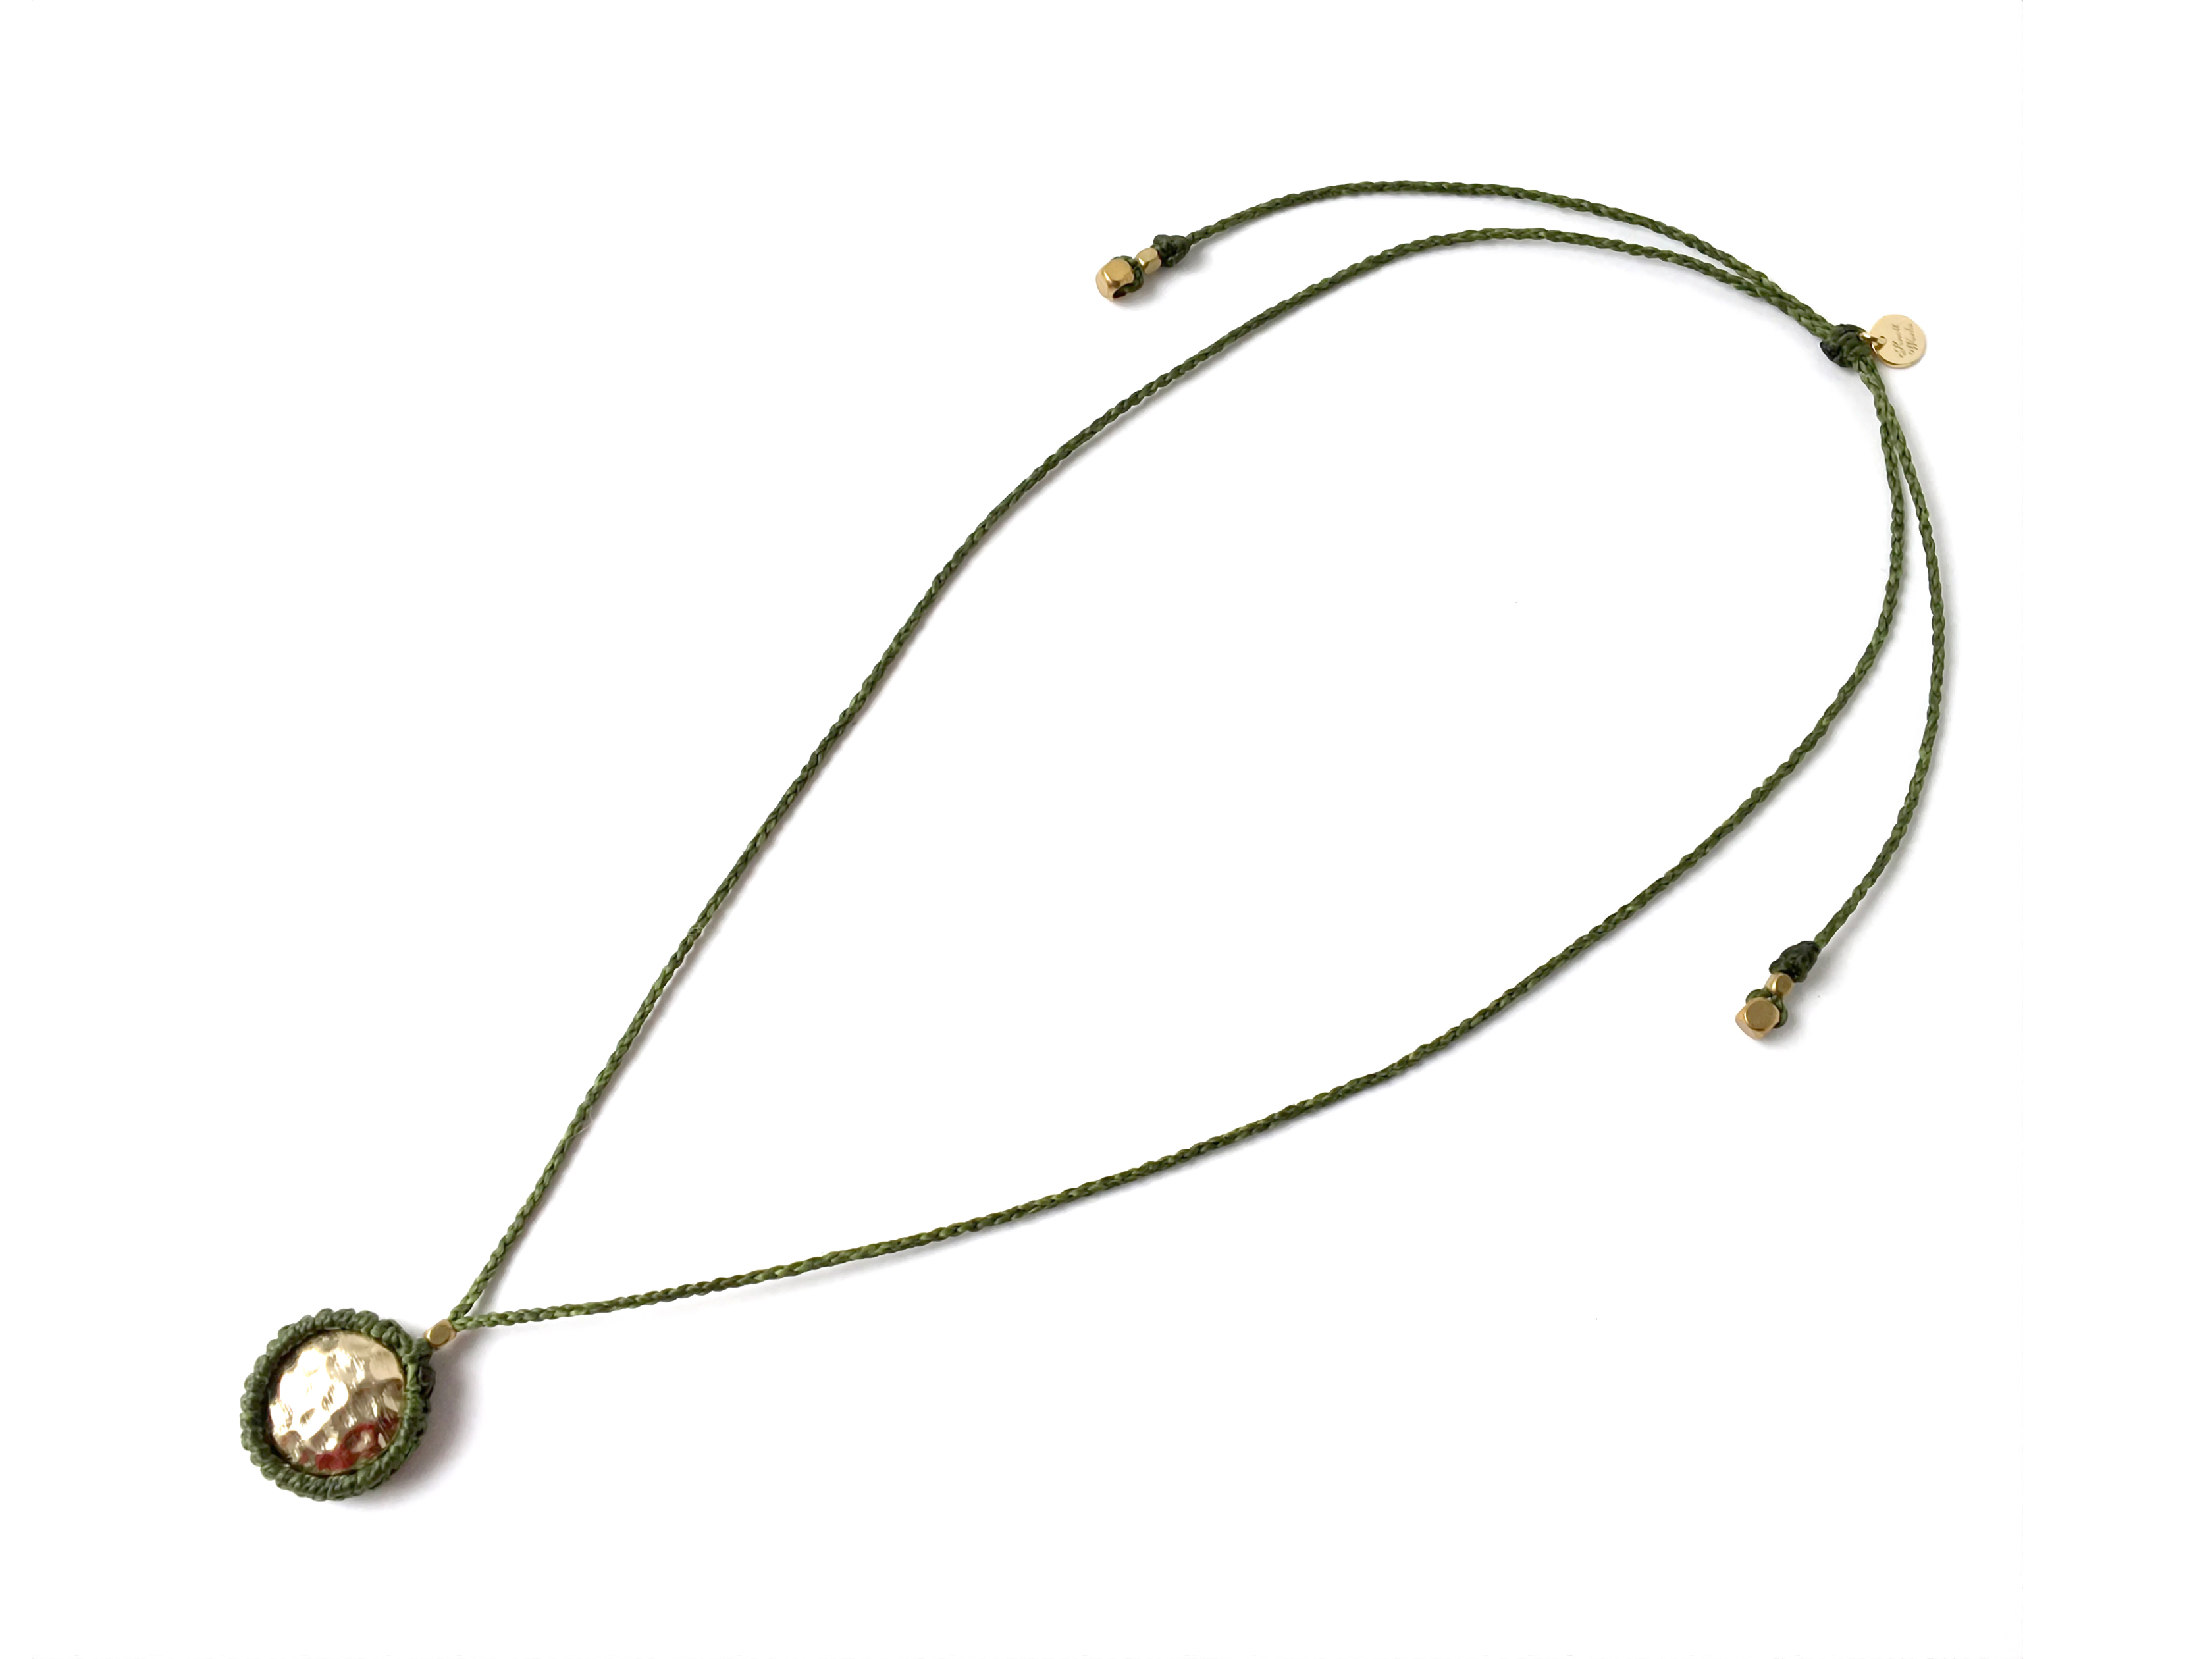 2WAY Wrapped Mettal Necklace/Khaki (Gold/Silver) [ロングネックレス,チョーカー]